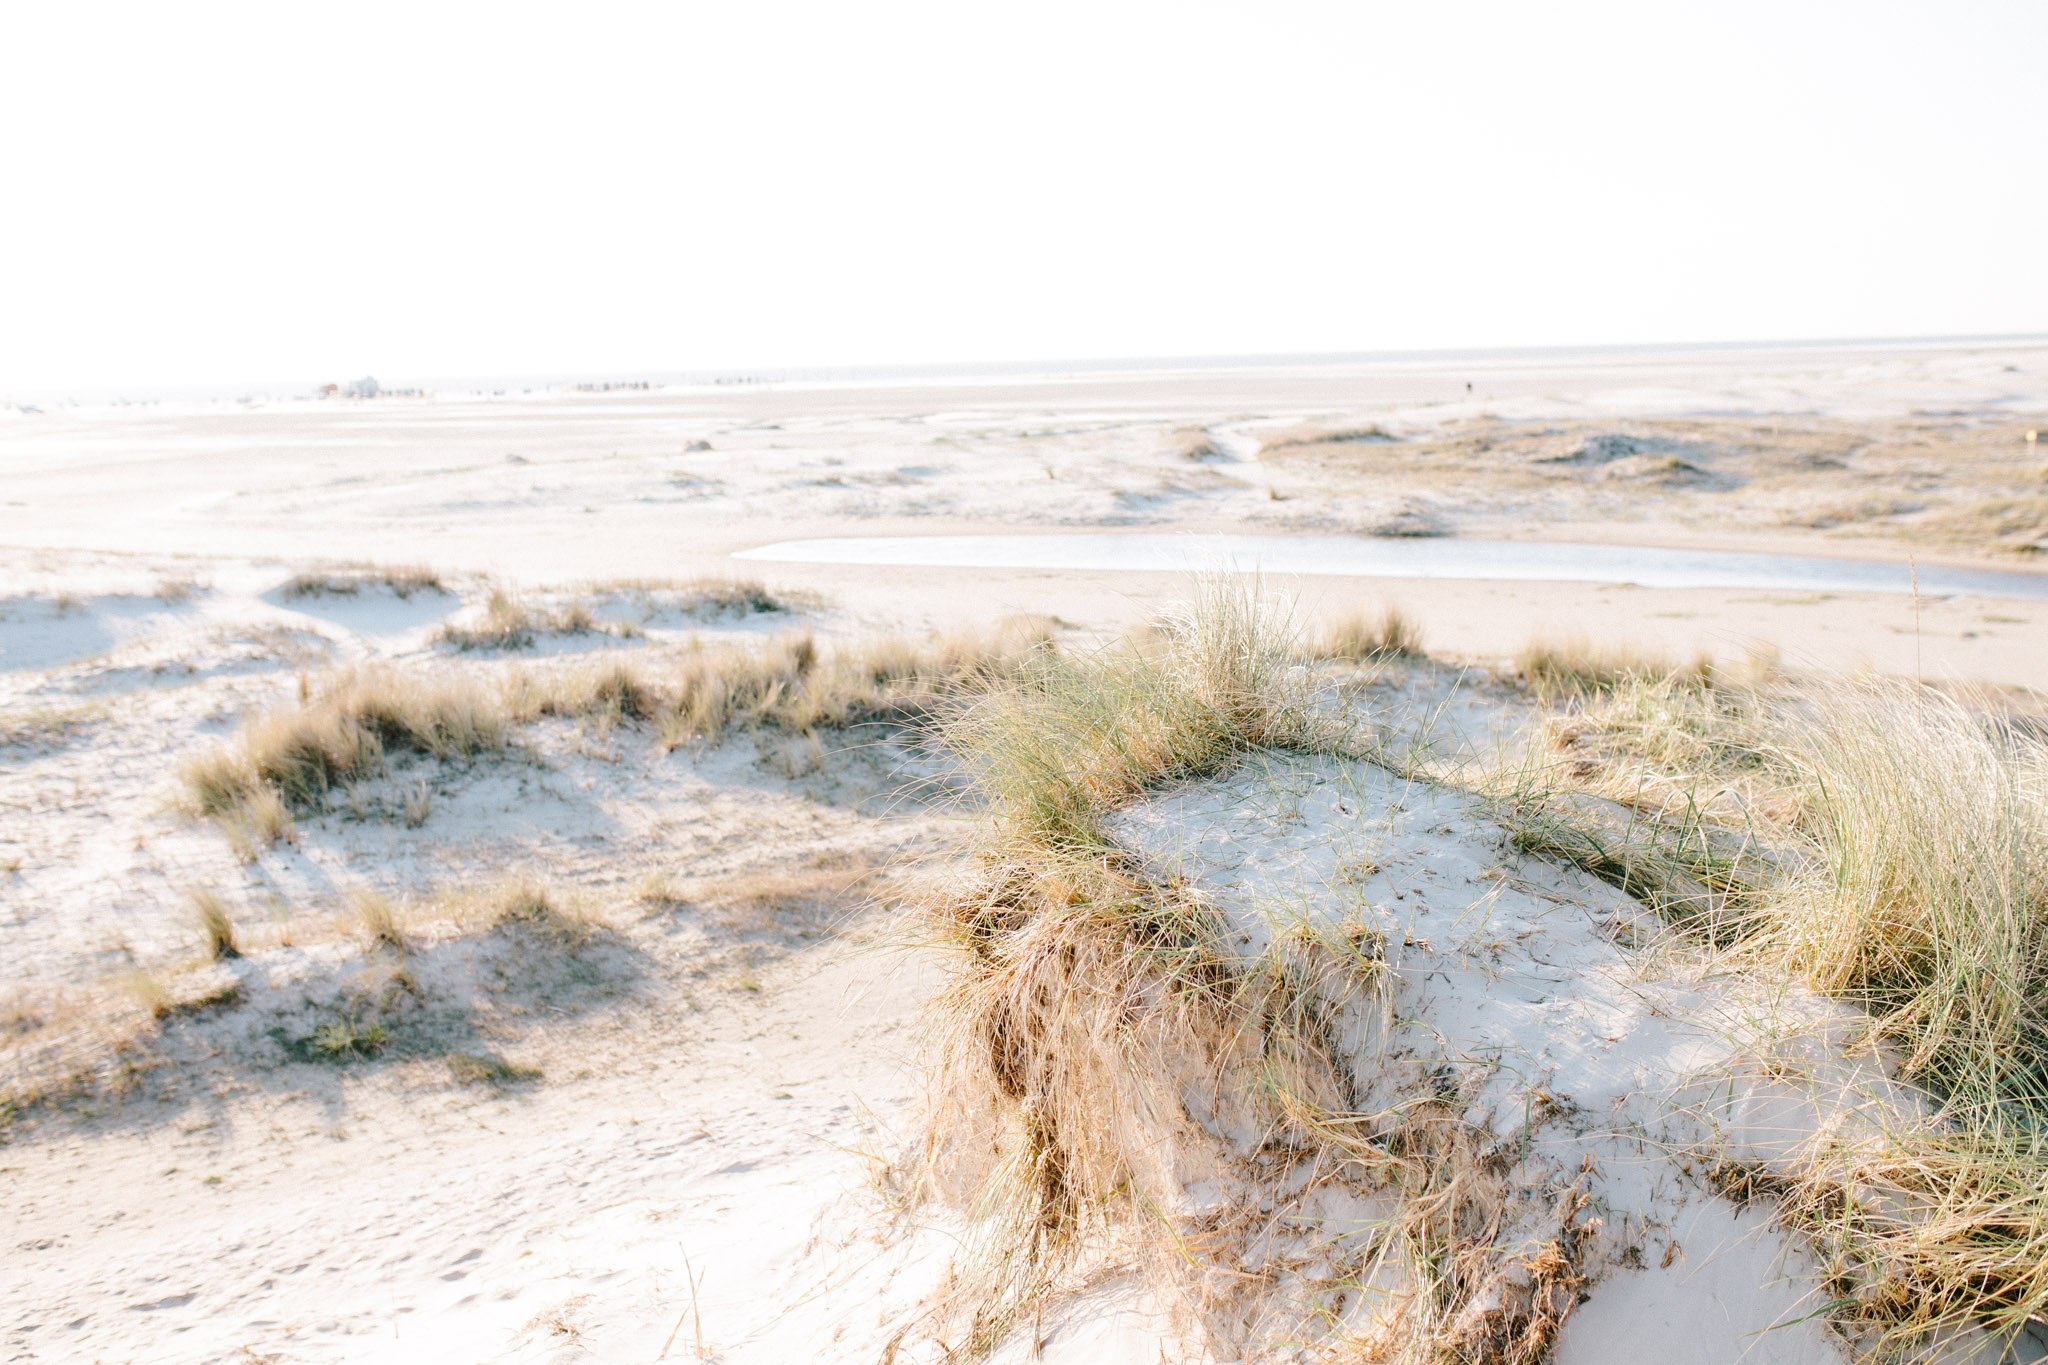 Sankt-Peter-Ording-Engagement-Pia-Anna-Christian-Wedding-Photography-KT-1.jpg